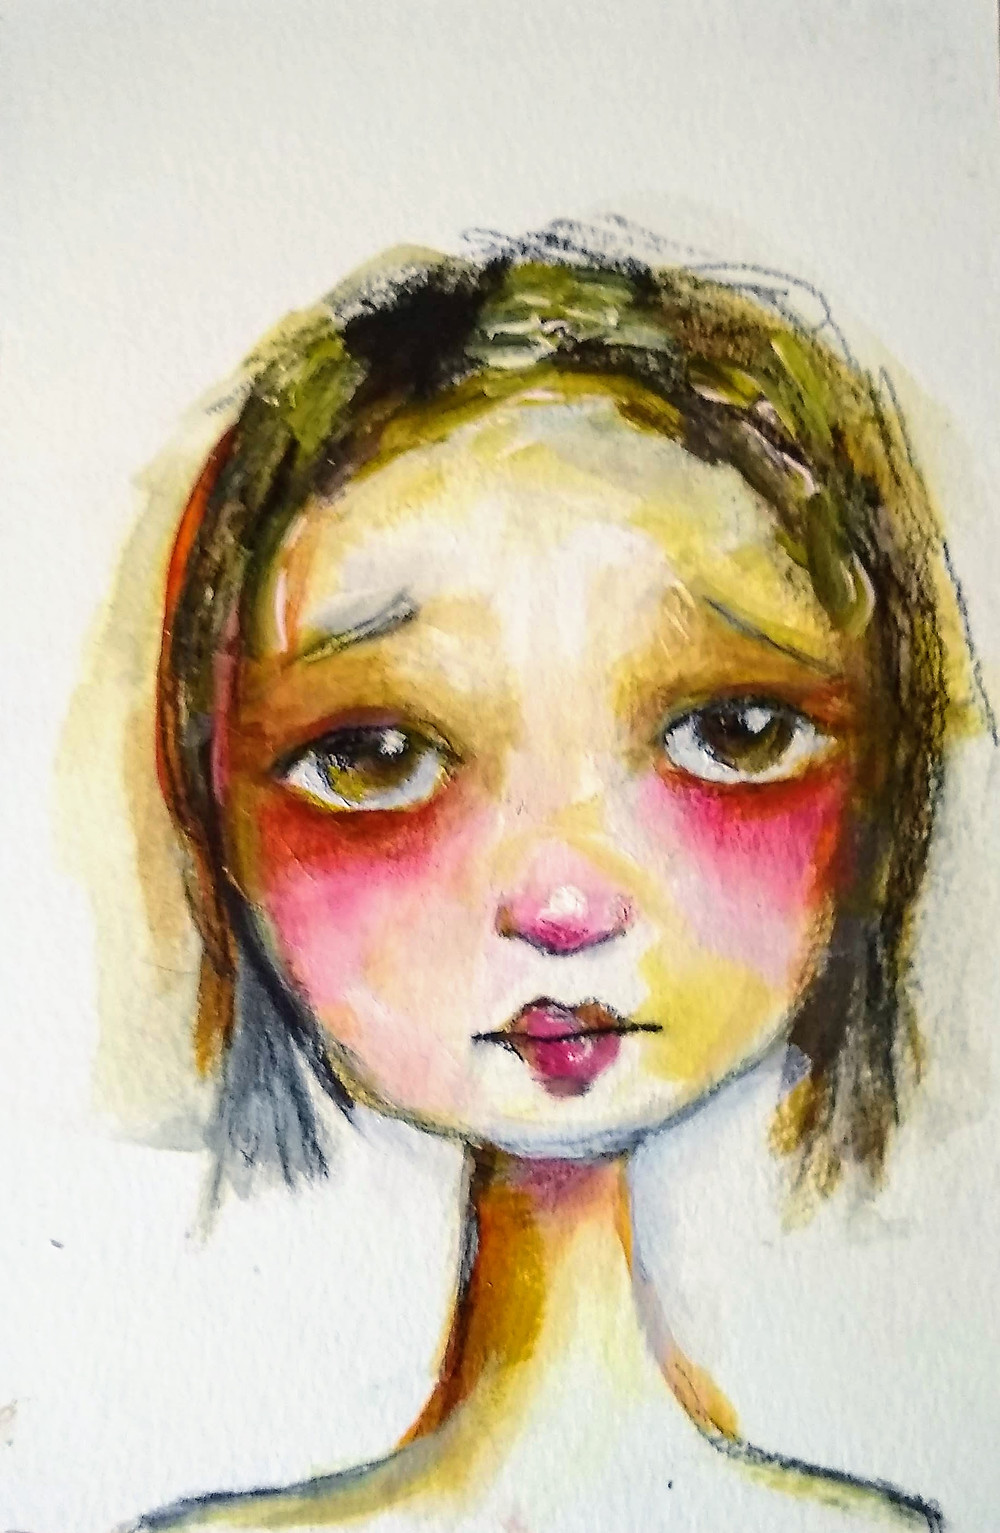 Sad child painting